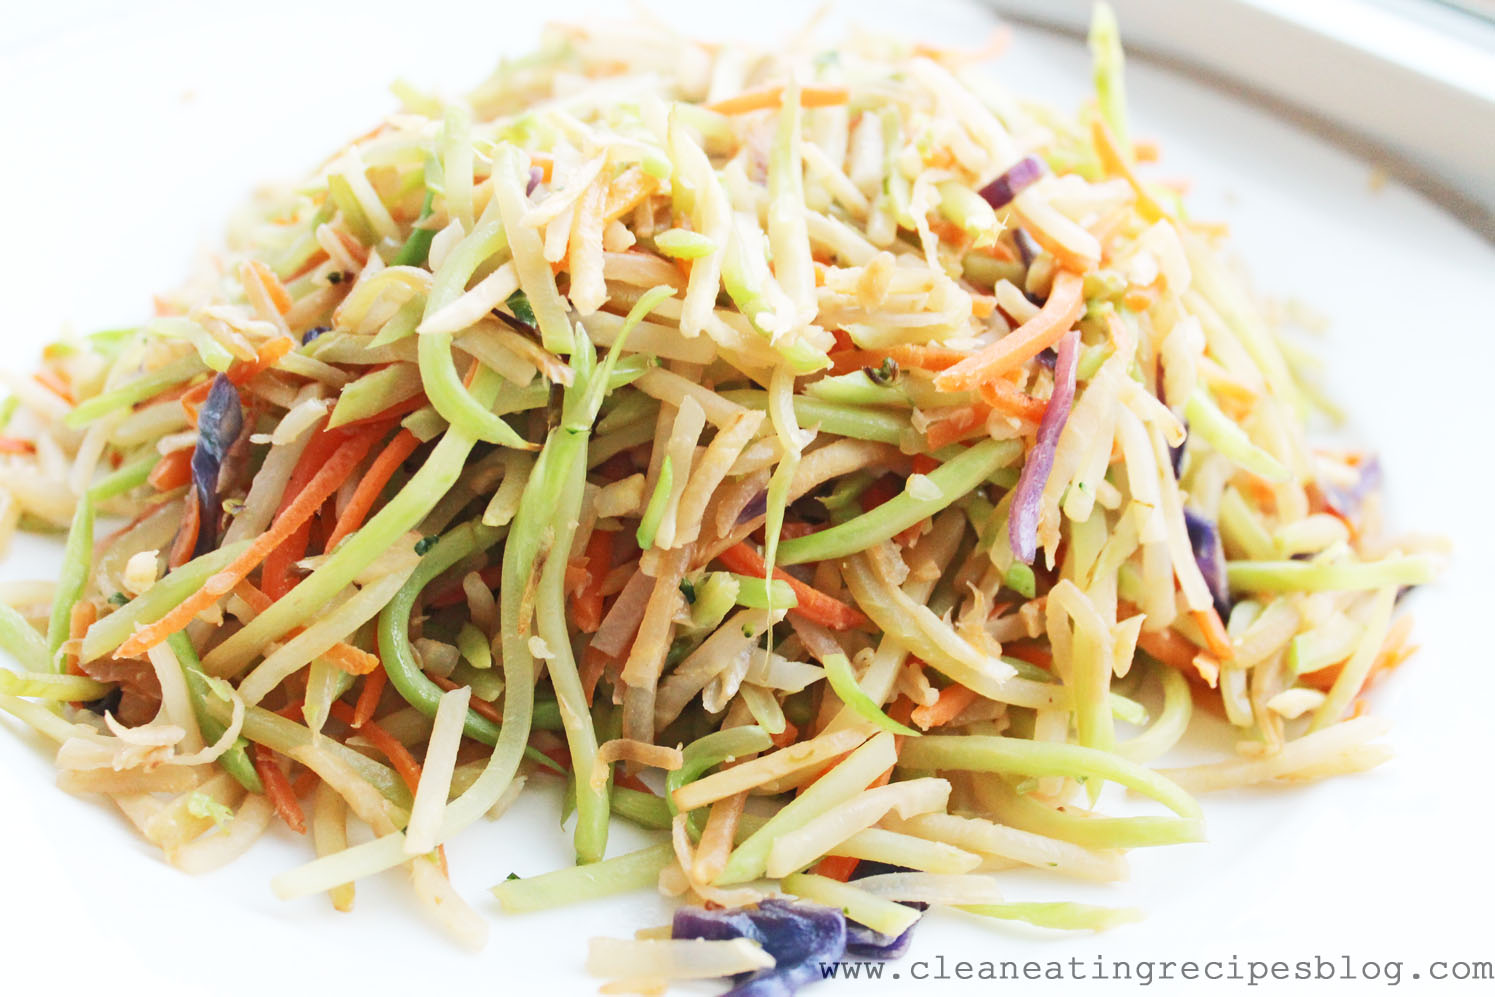 Clean Eating Recipe – Stir Fry Rainbow Slaw